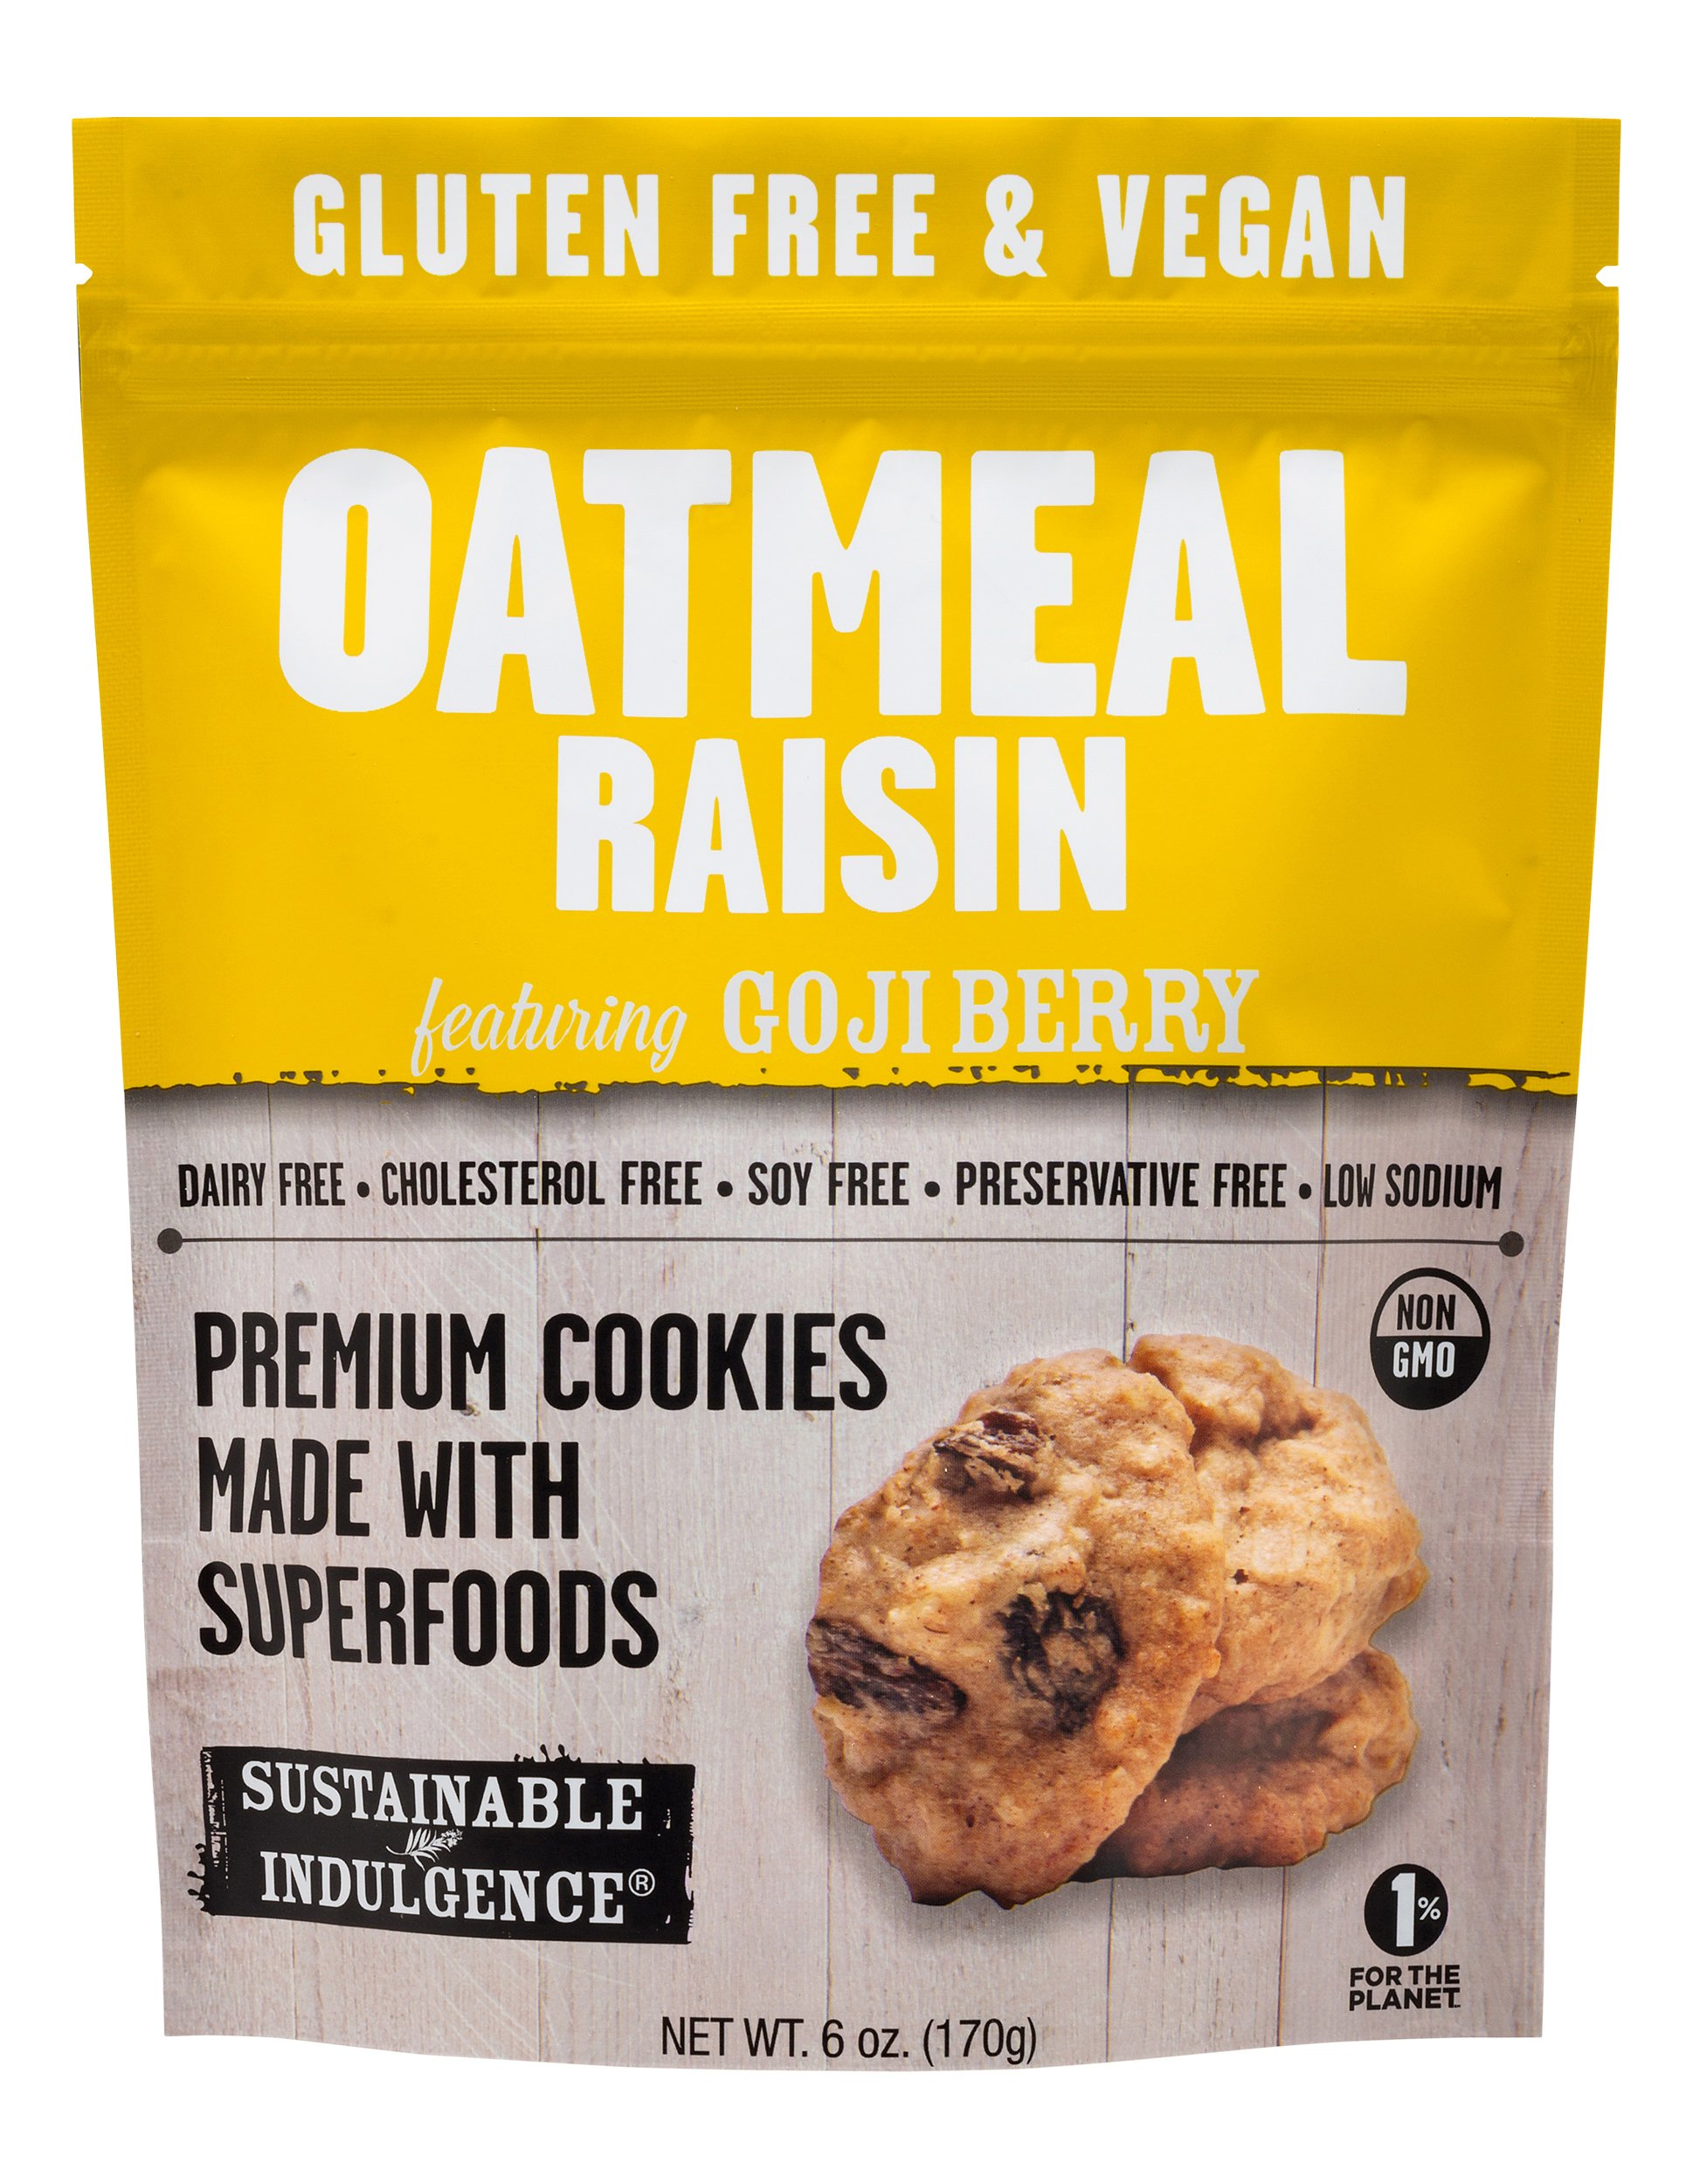 Sustainable Indulgence - Gluten Free, Vegan Cookies with Superfoods, Oatmeal Raisin (Pack of 3) by Sustainable Indulgence